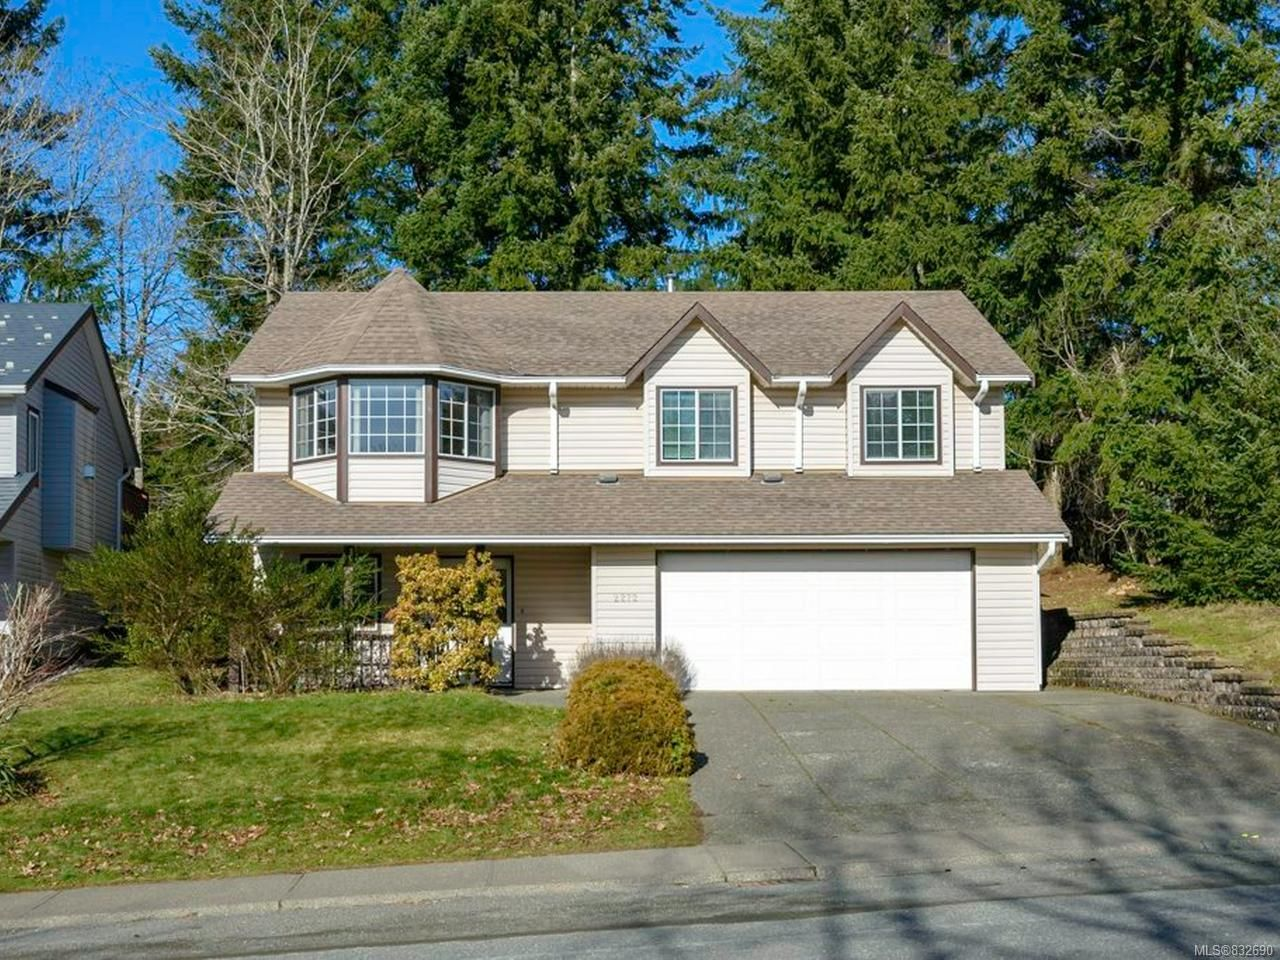 Main Photo: 2272 VALLEY VIEW DRIVE in COURTENAY: CV Courtenay East House for sale (Comox Valley)  : MLS®# 832690